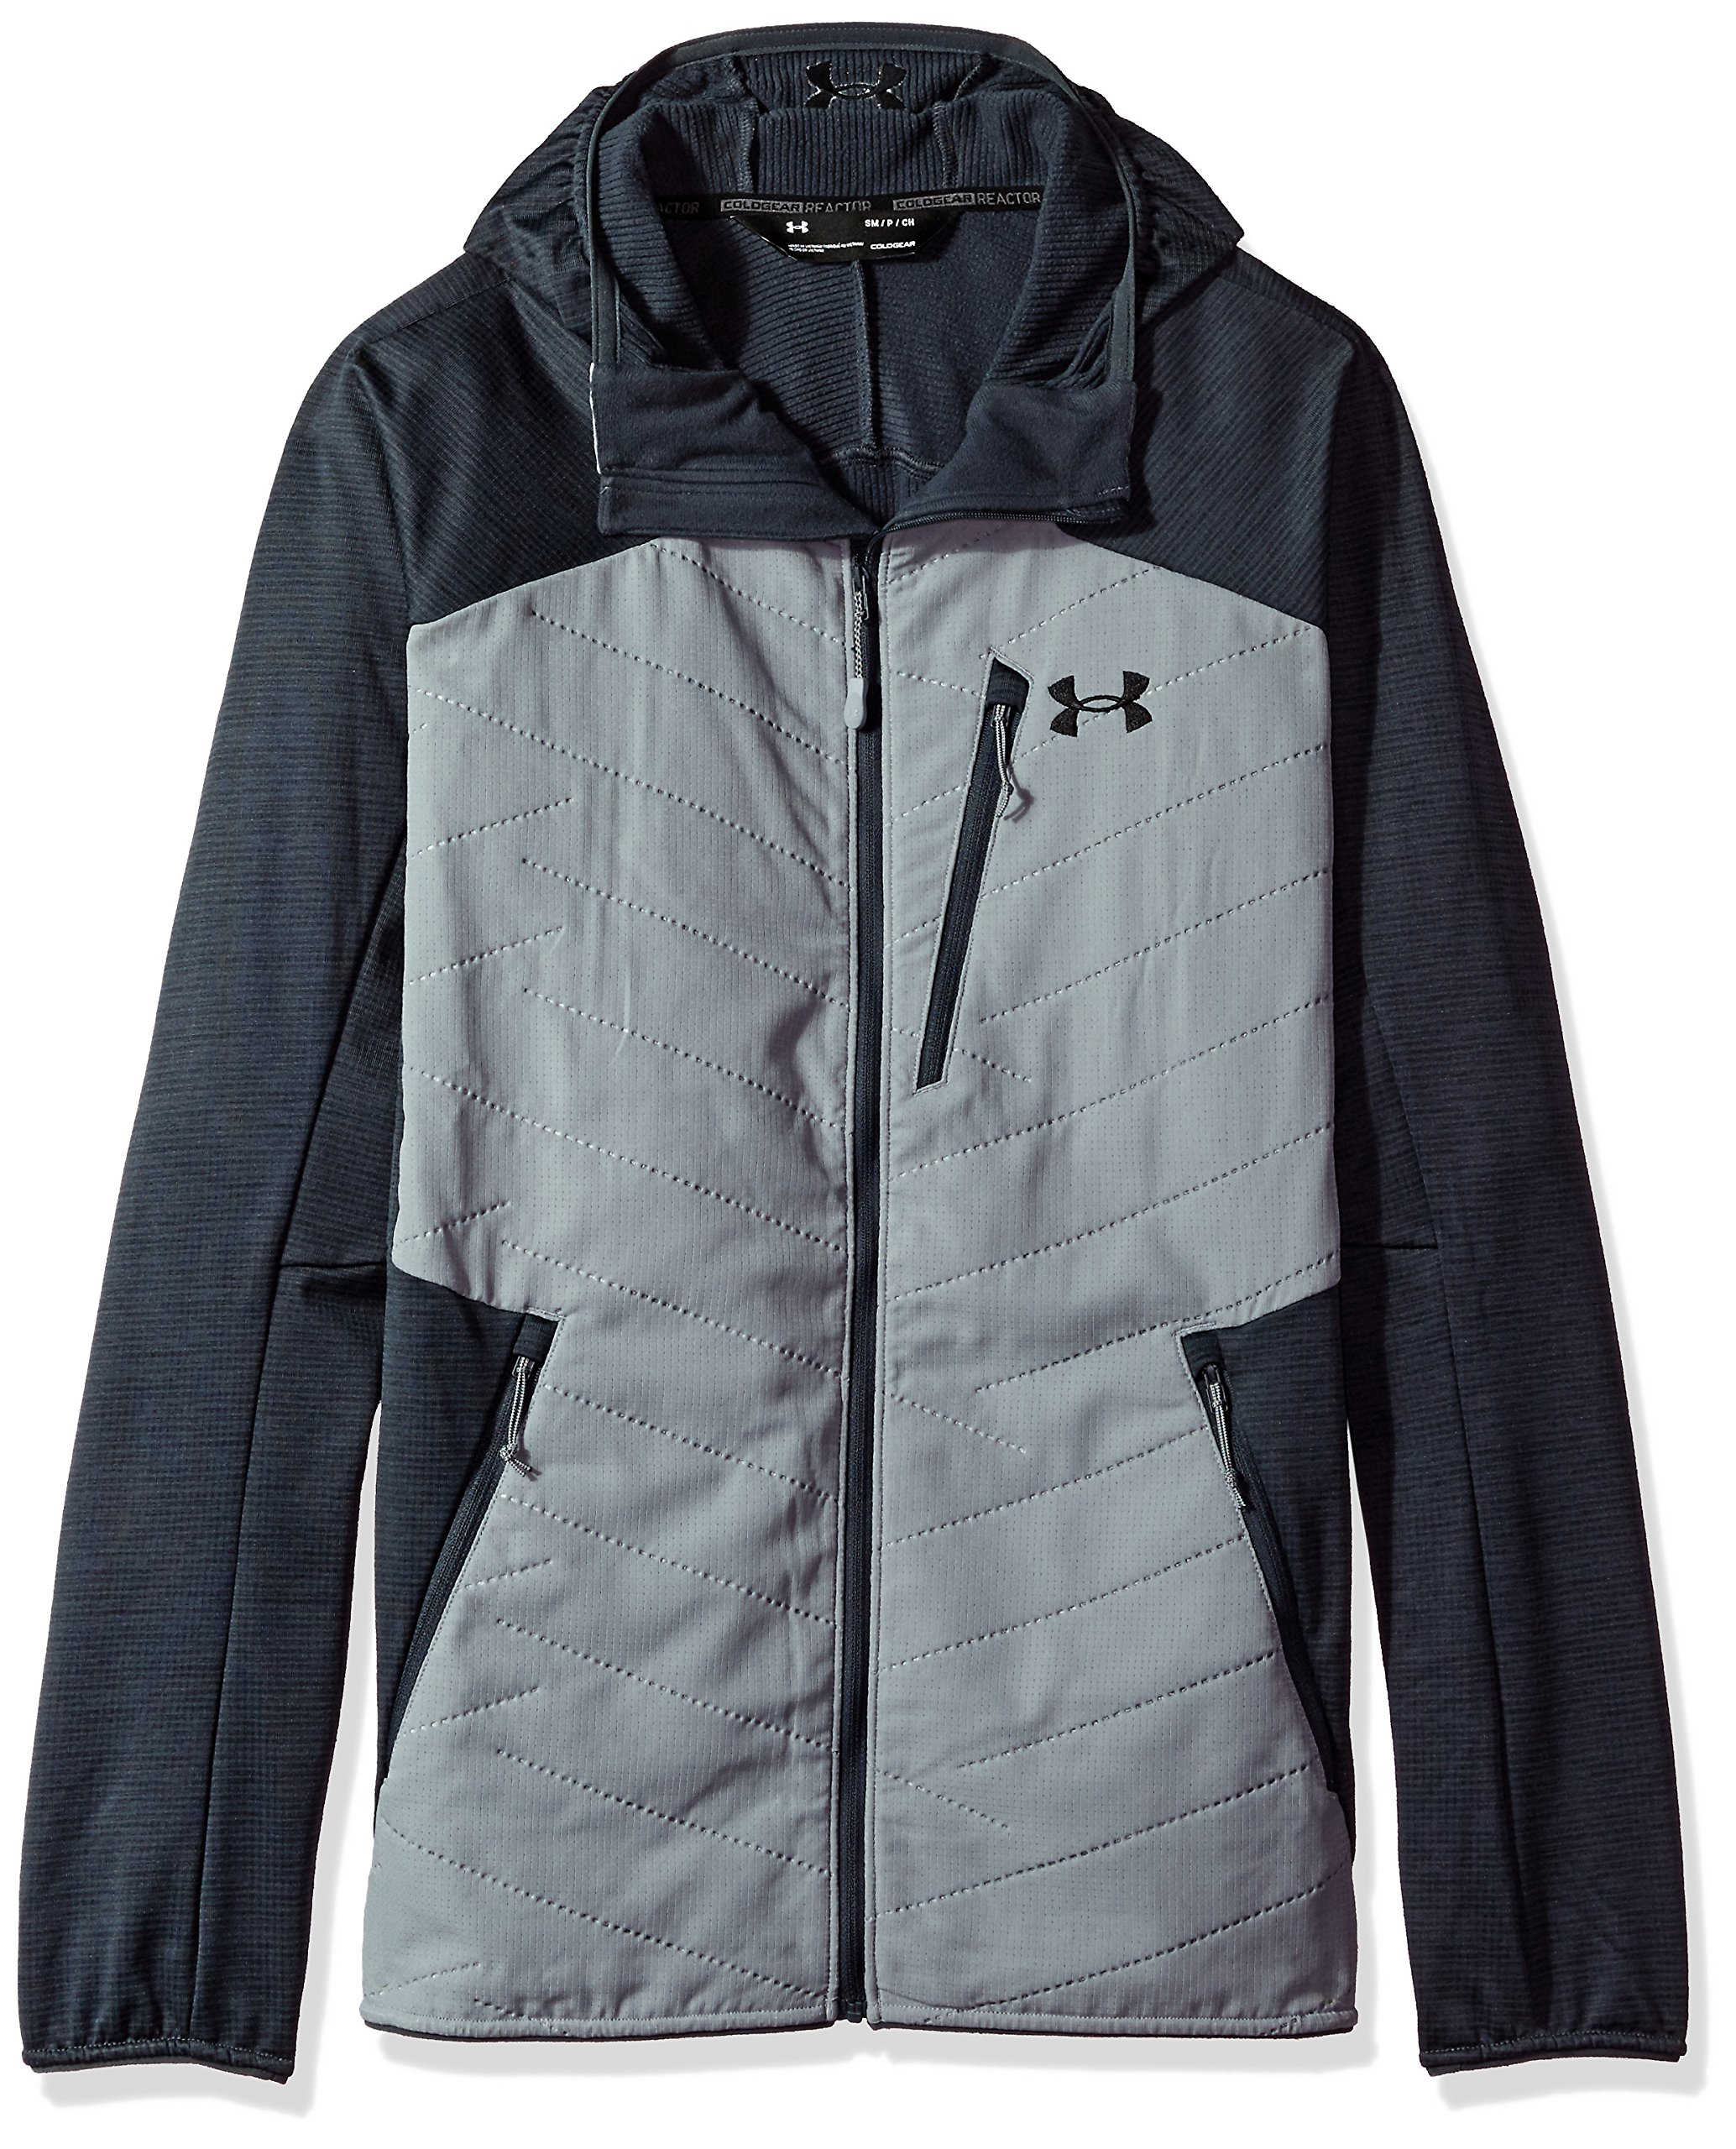 Under Armour Outerwear Under Armour Men's Hooded Reactor 3G Jacket, Steel/Black, Small